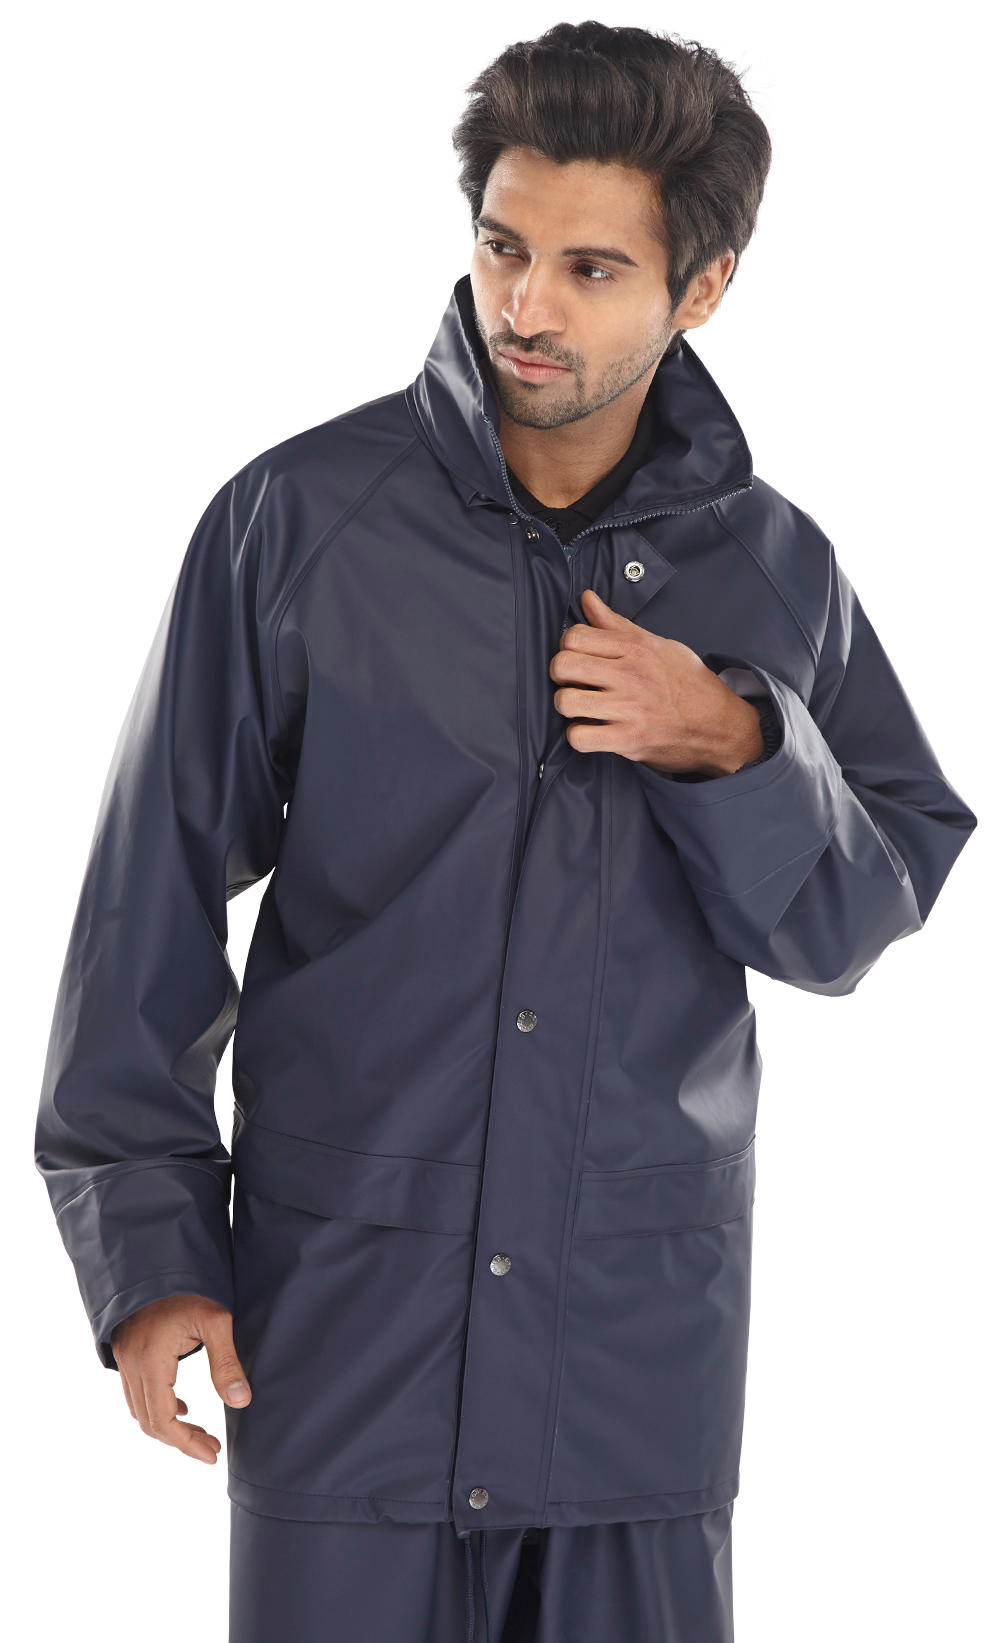 BRECON TRANSFER COATED JACKET - BRECJ